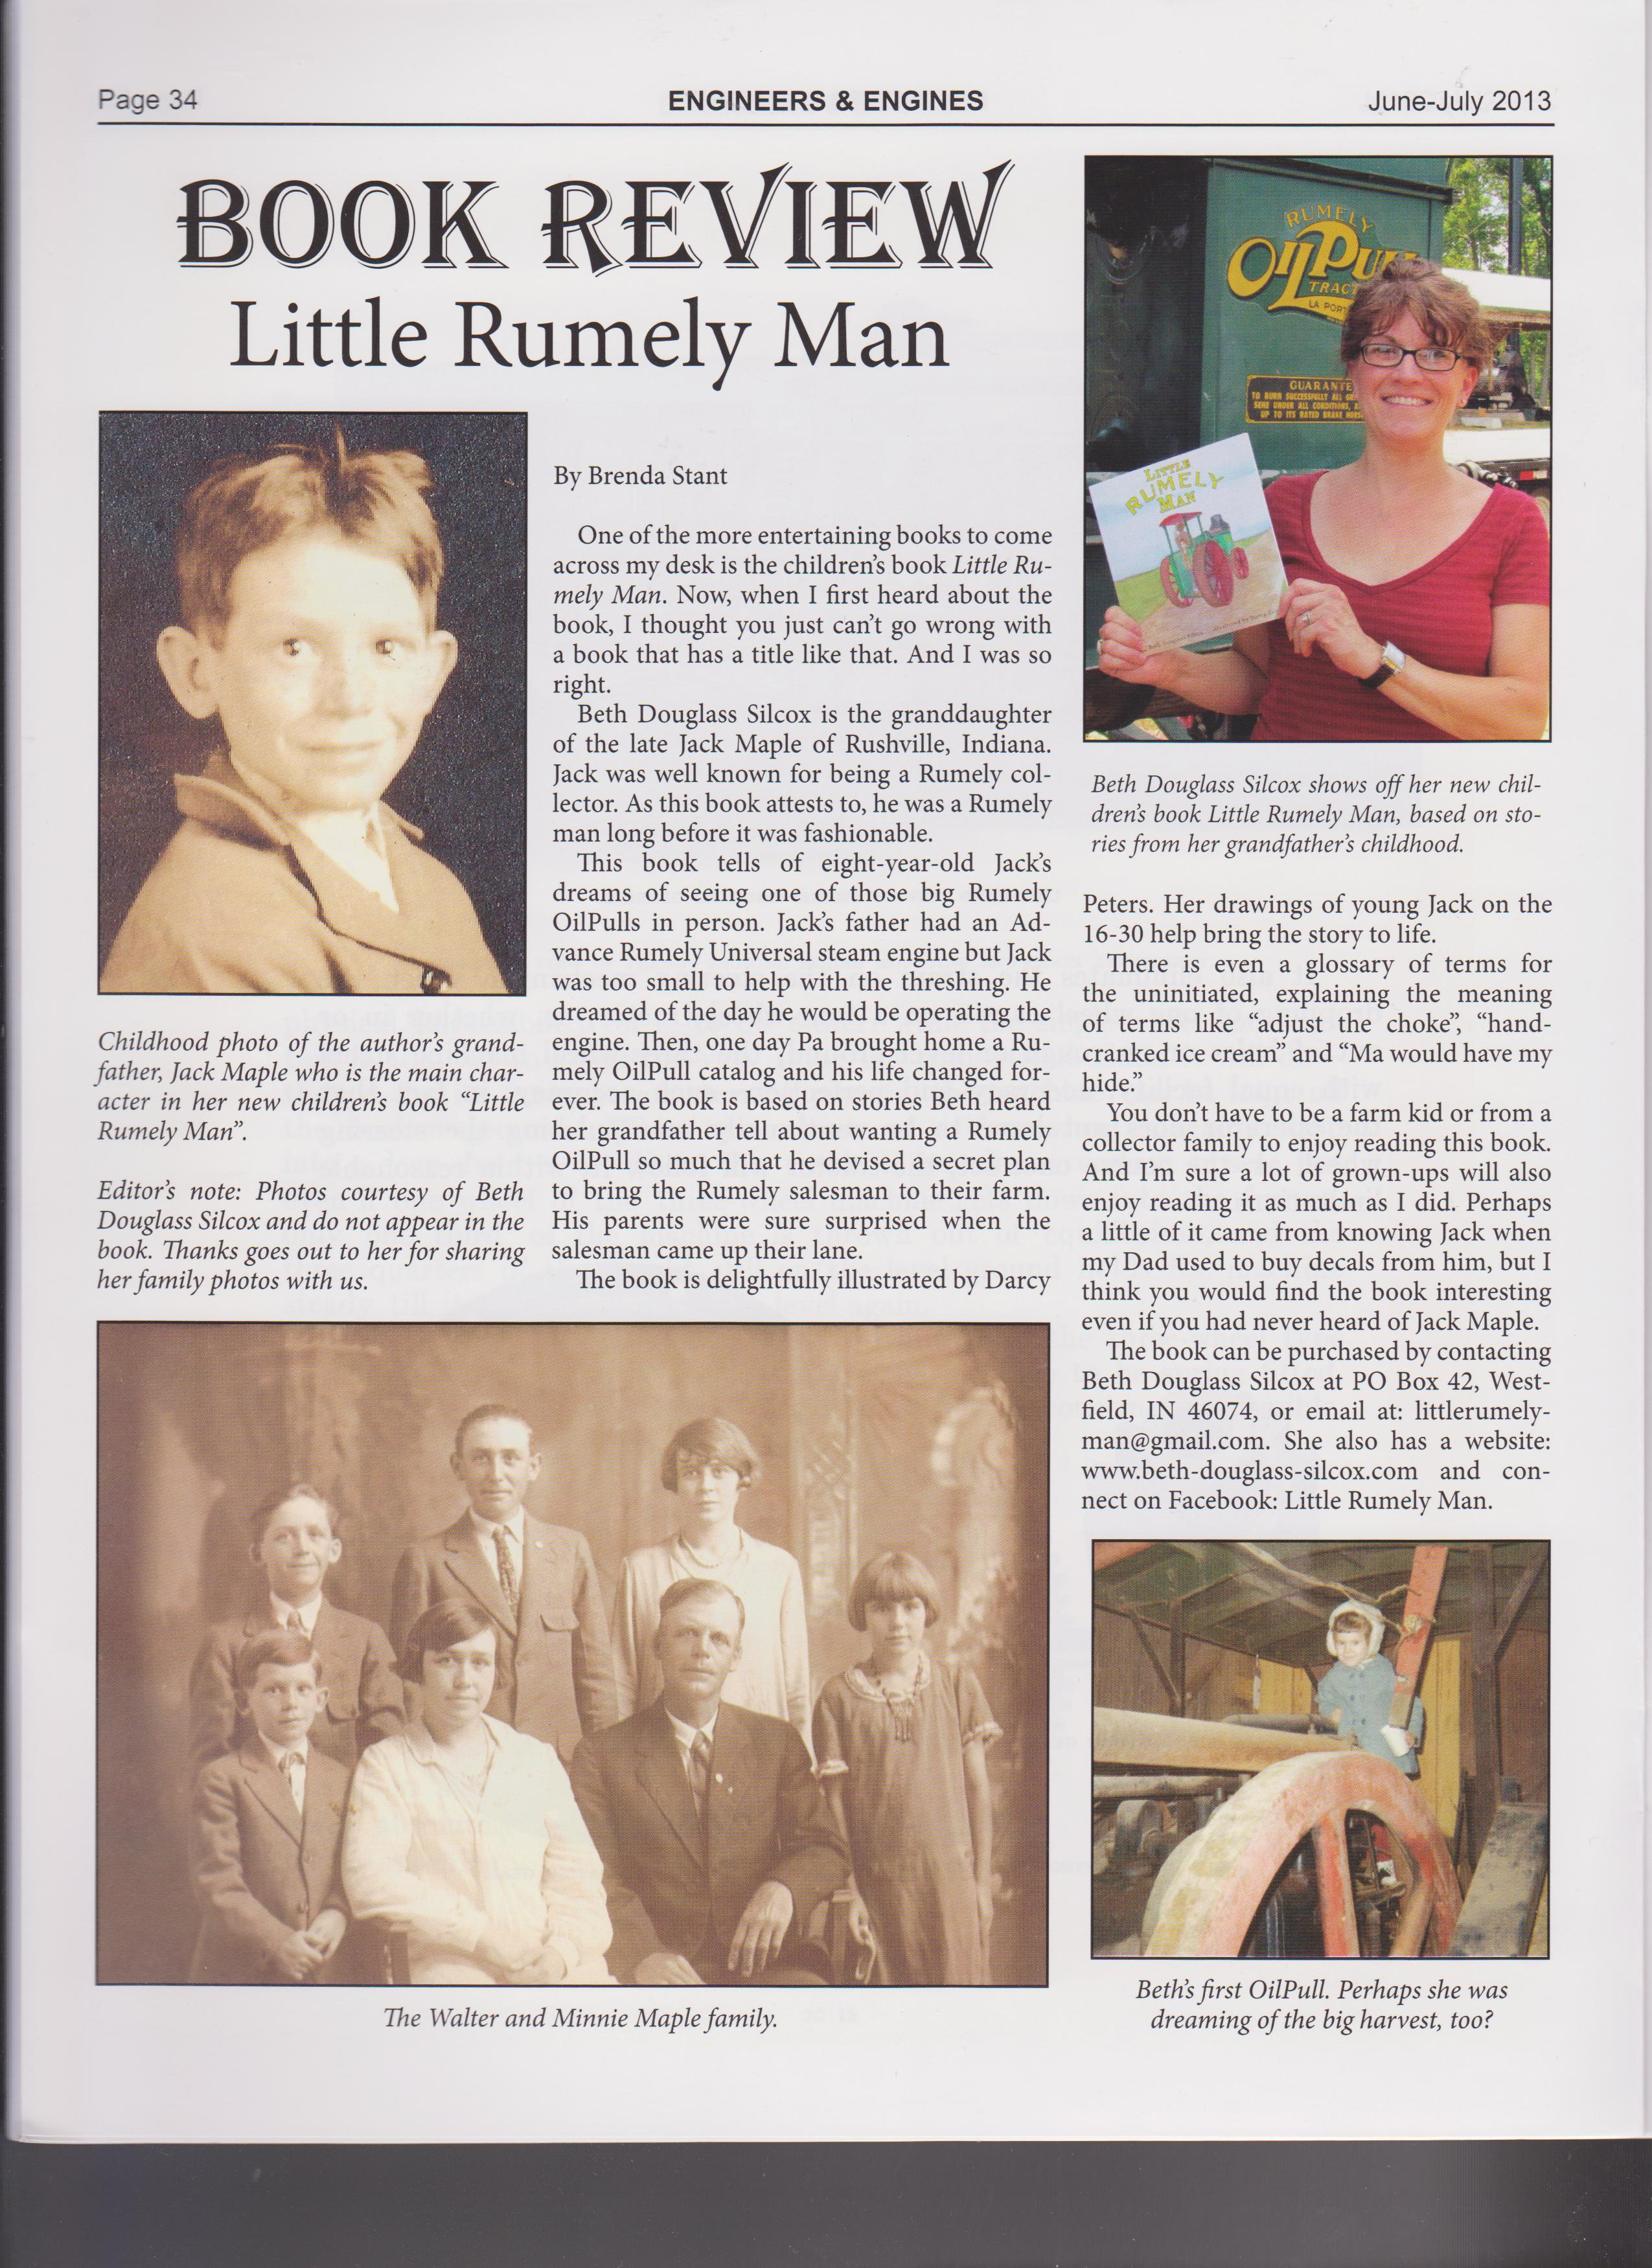 Engineers and Engines is a antique farm machinery magazine. They published this review of Little Rumely Man in the June/July issue.